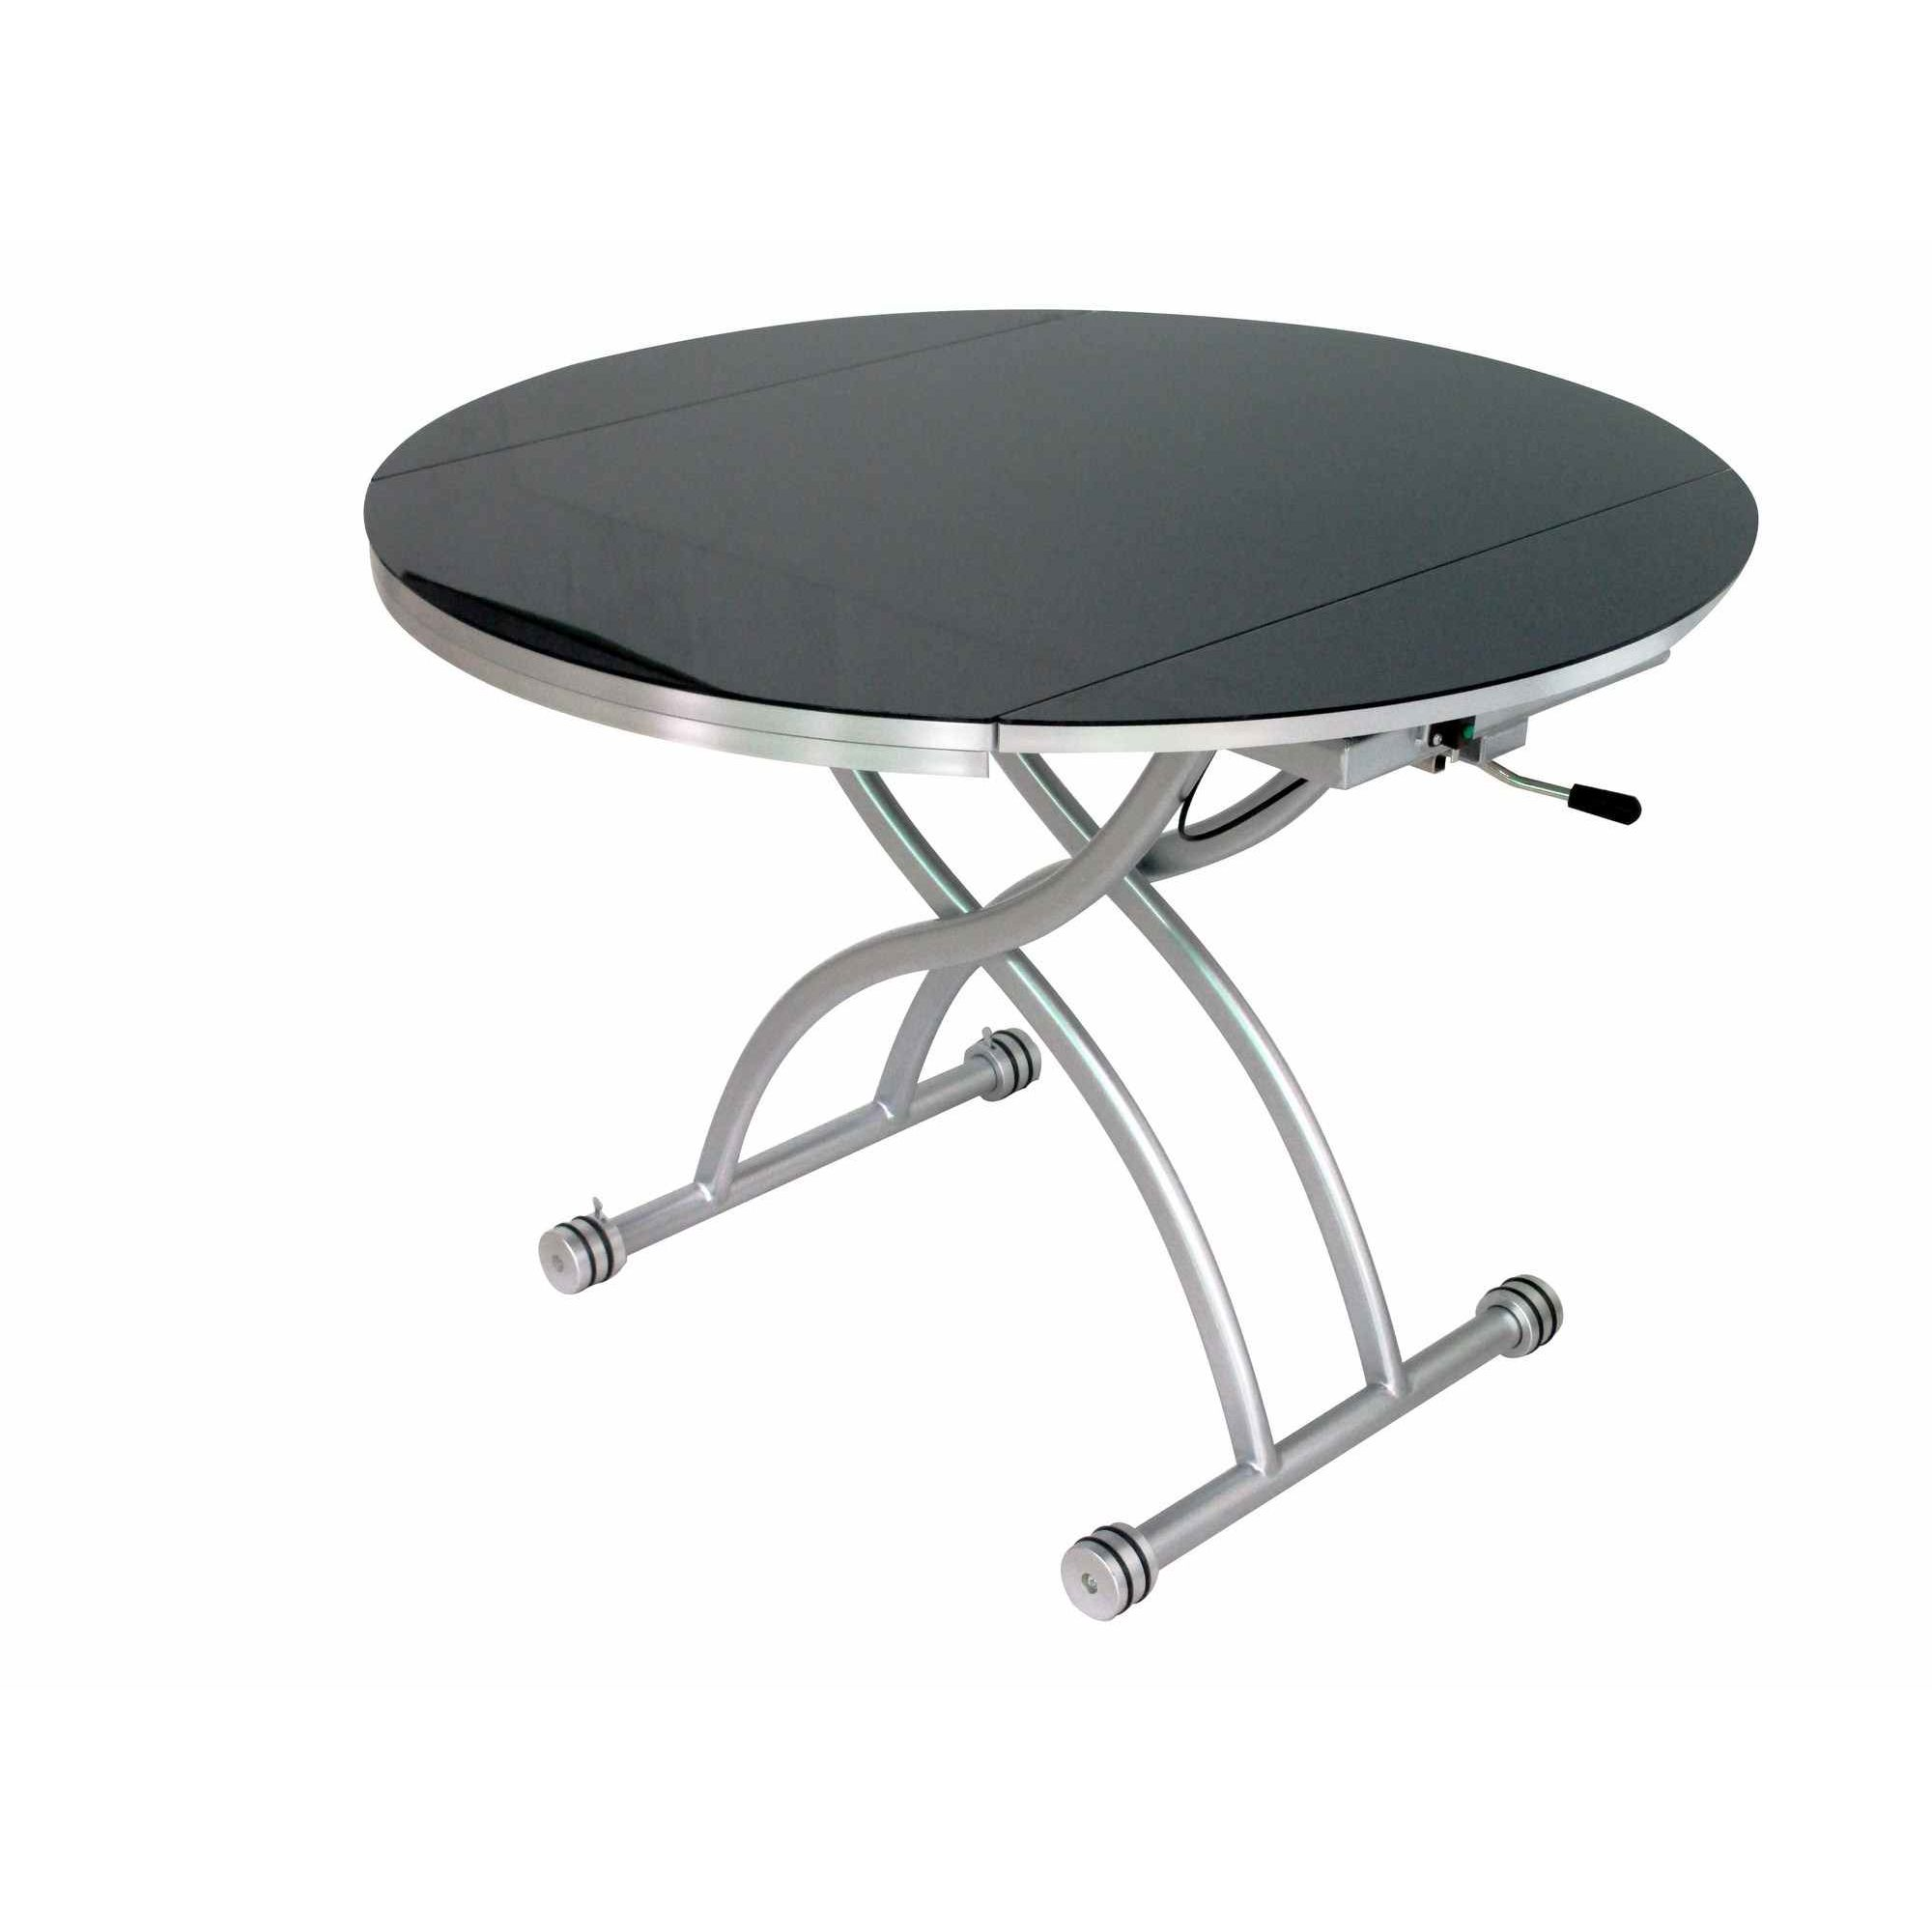 Table Ronde Extensible Noir Deco In Paris Table Basse Ronde Relevable Extensible